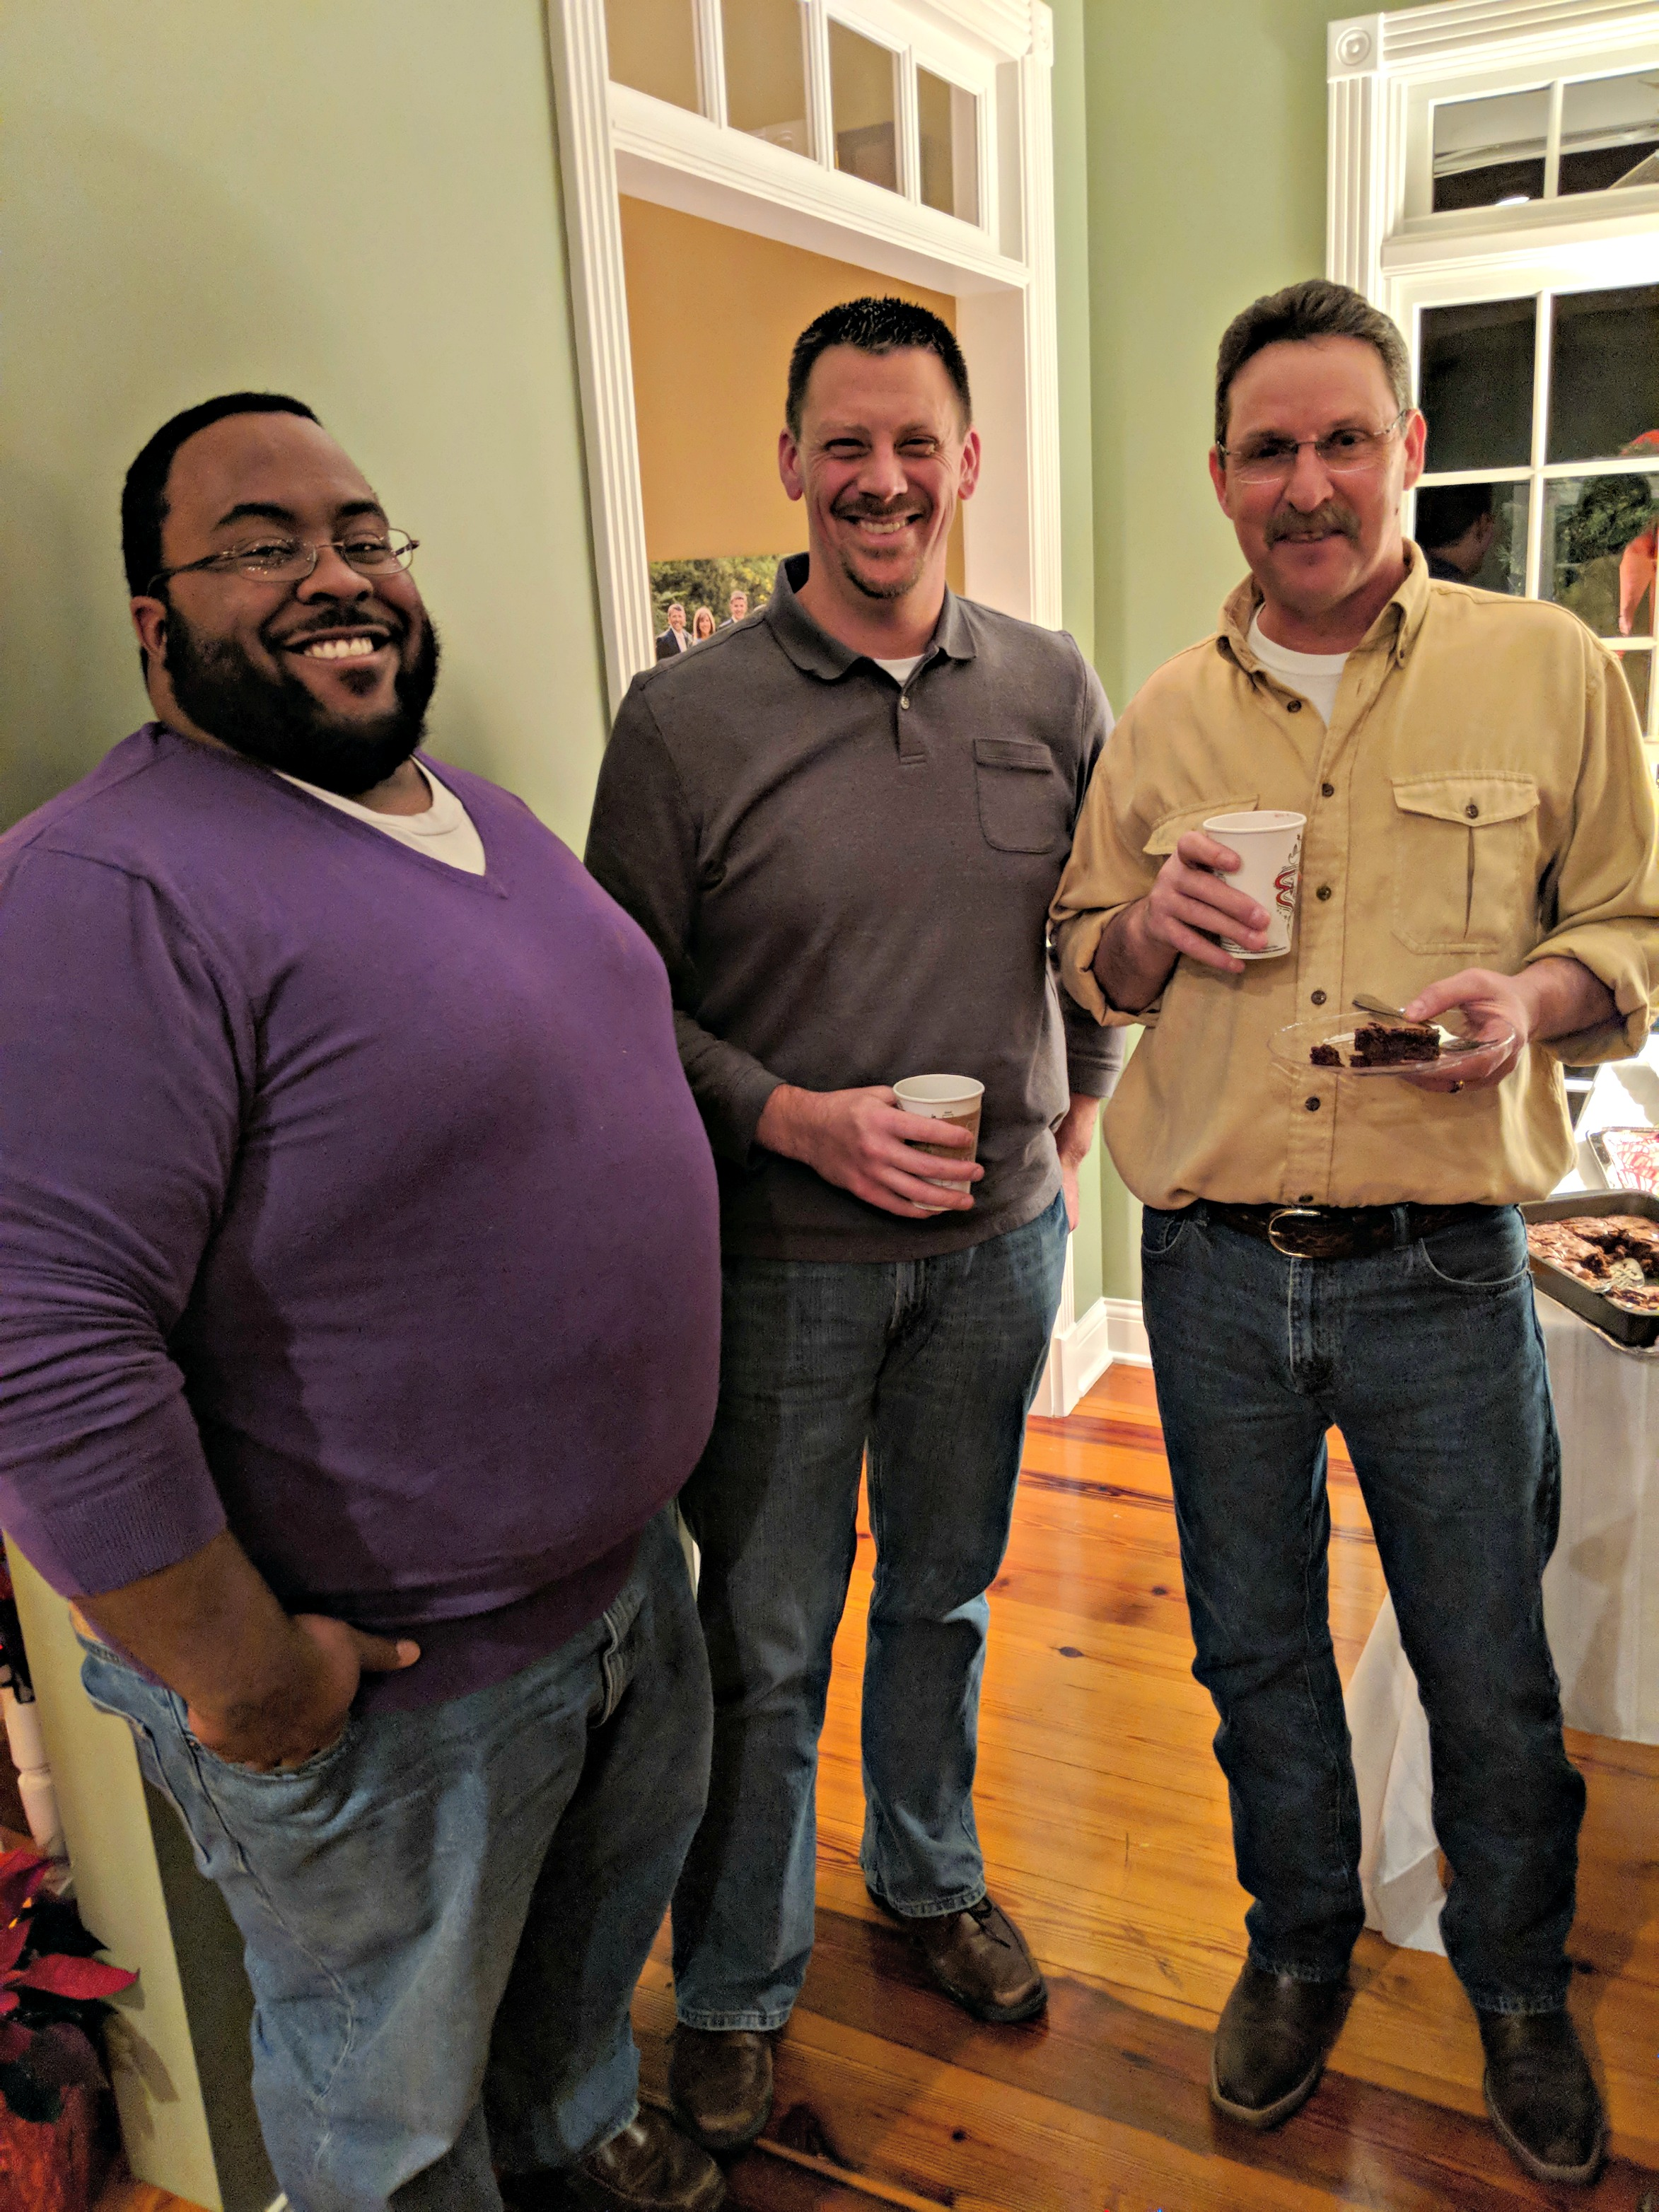 William_Michael_Mark_HolidayParty2017.jpg